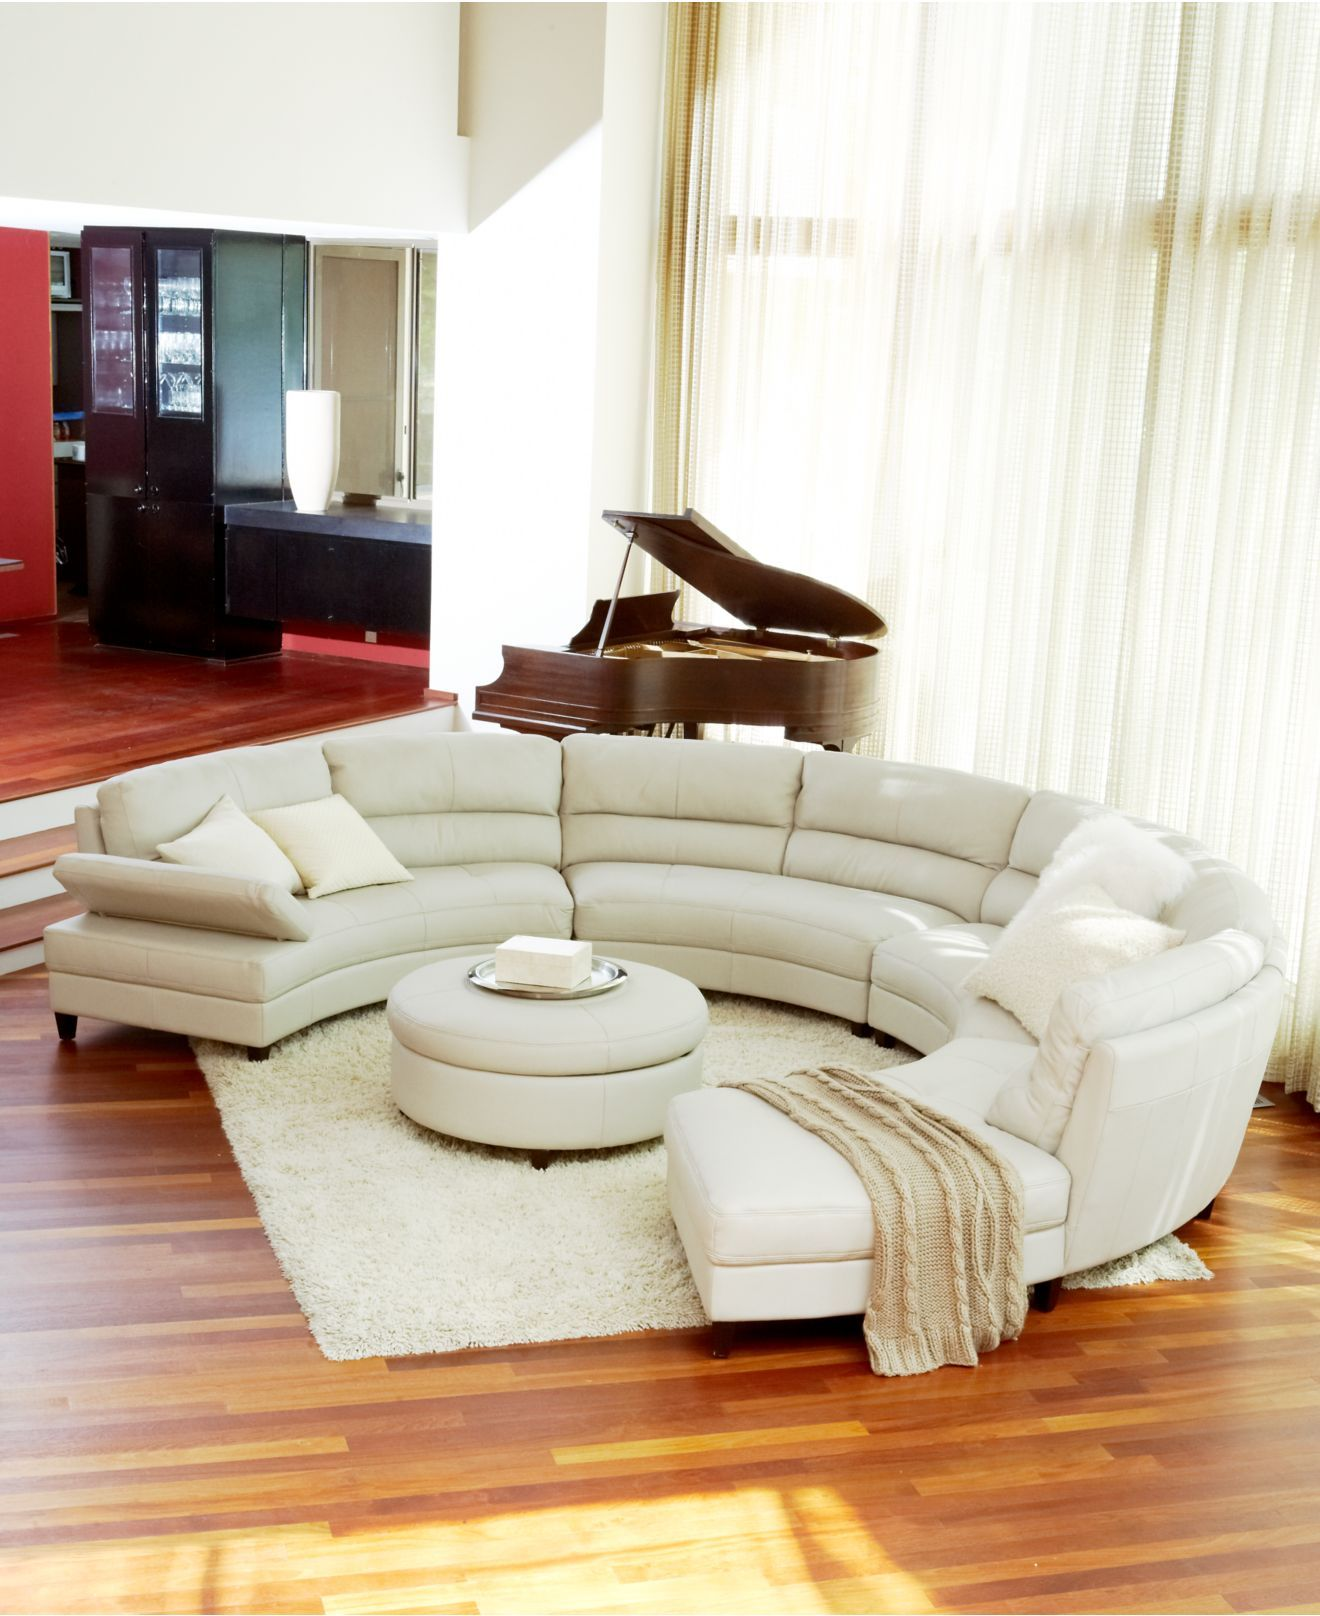 Franchesca Living Room Furniture Sets & Pieces - Sofas - furniture ...